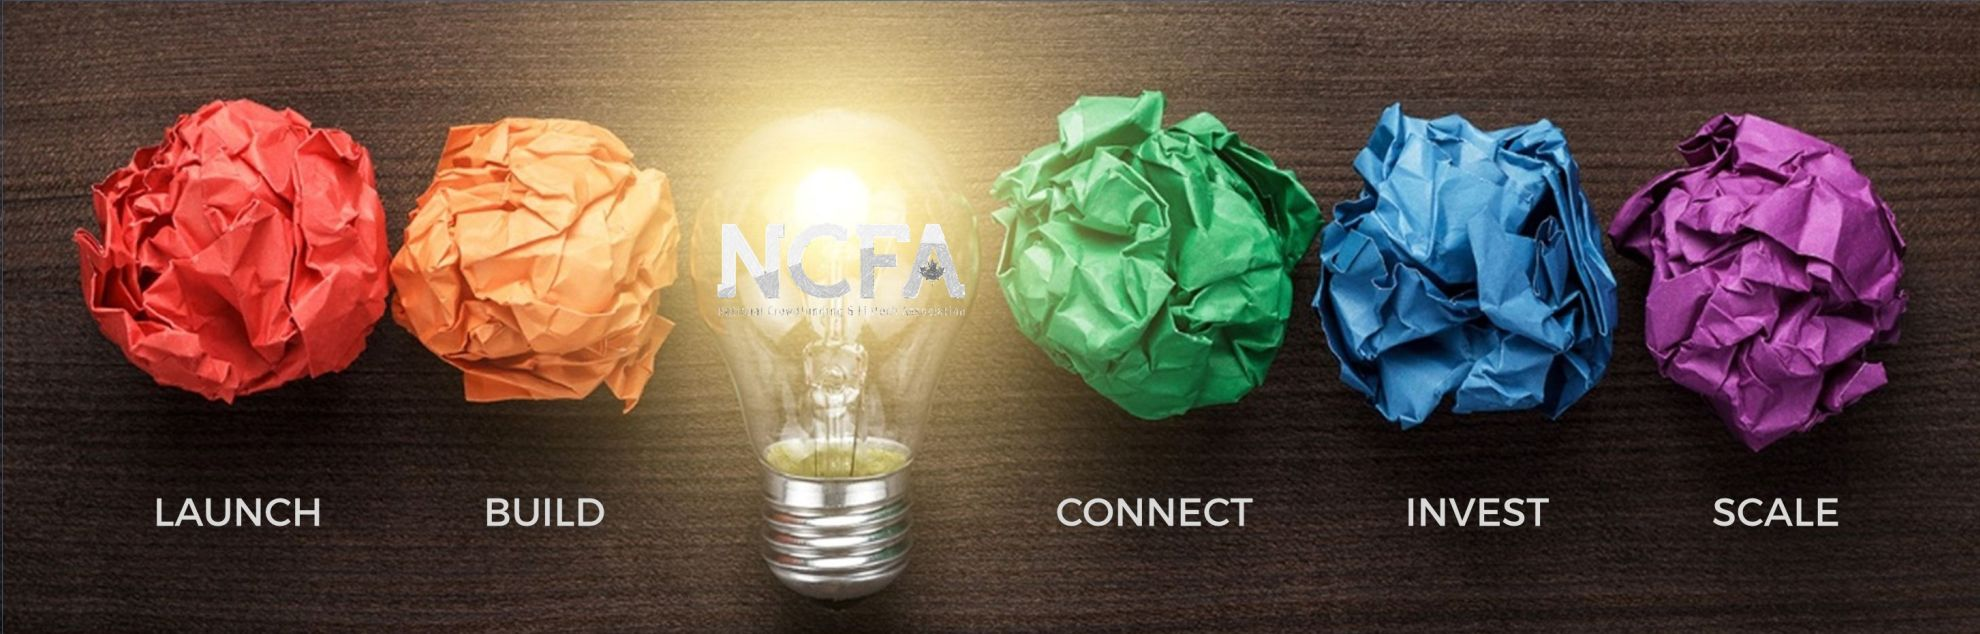 NCFAs innovation and funding ecosystem